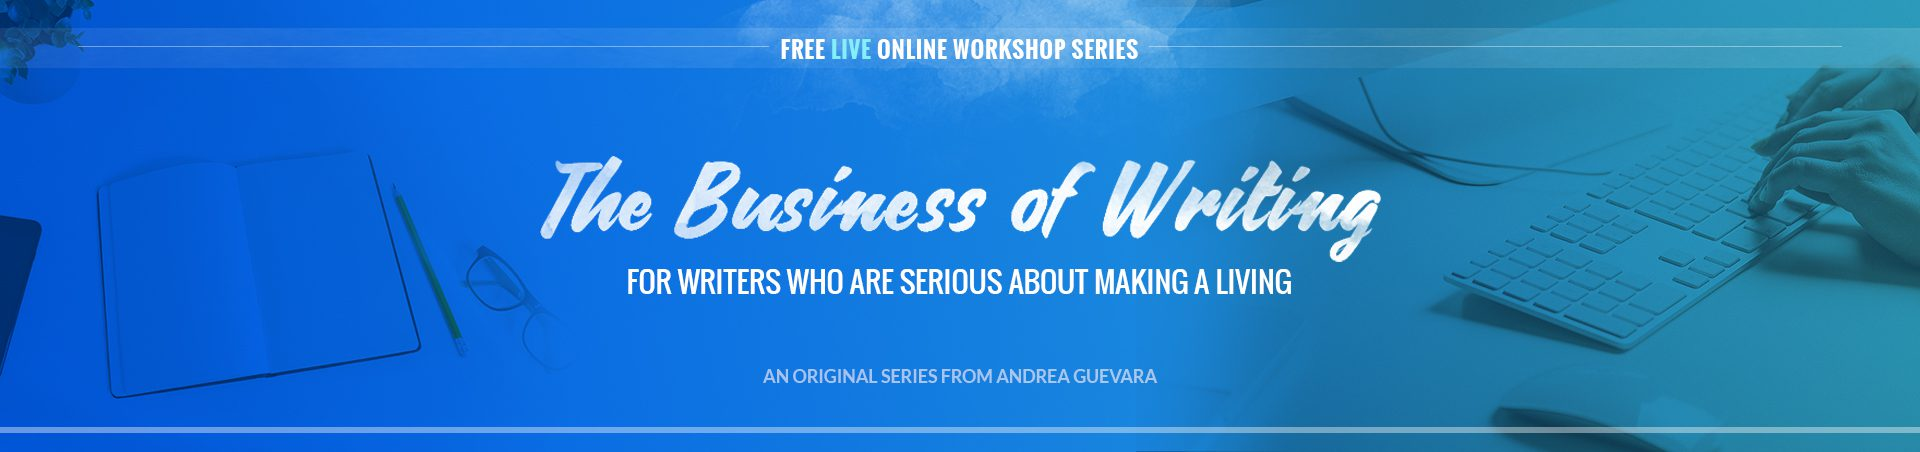 the business side of writing workshop series